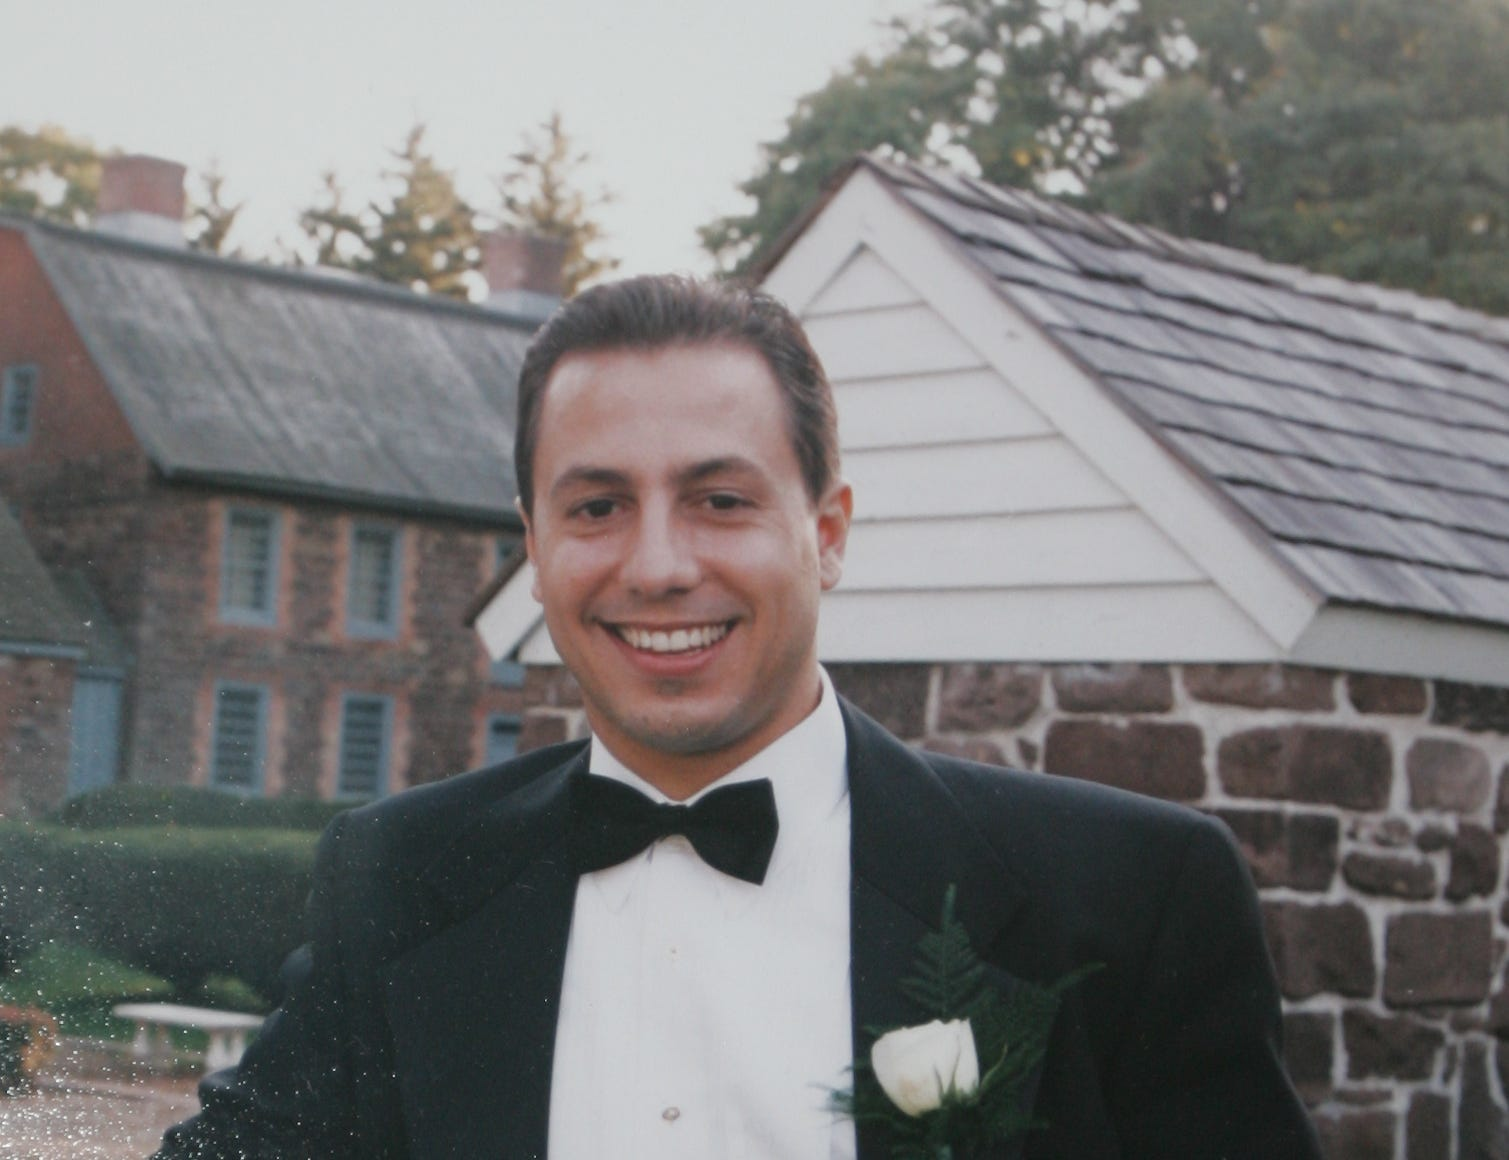 Craig Lilore. is shown in 1999, less than two years before he was killed at the World Trade Center on 9/11.